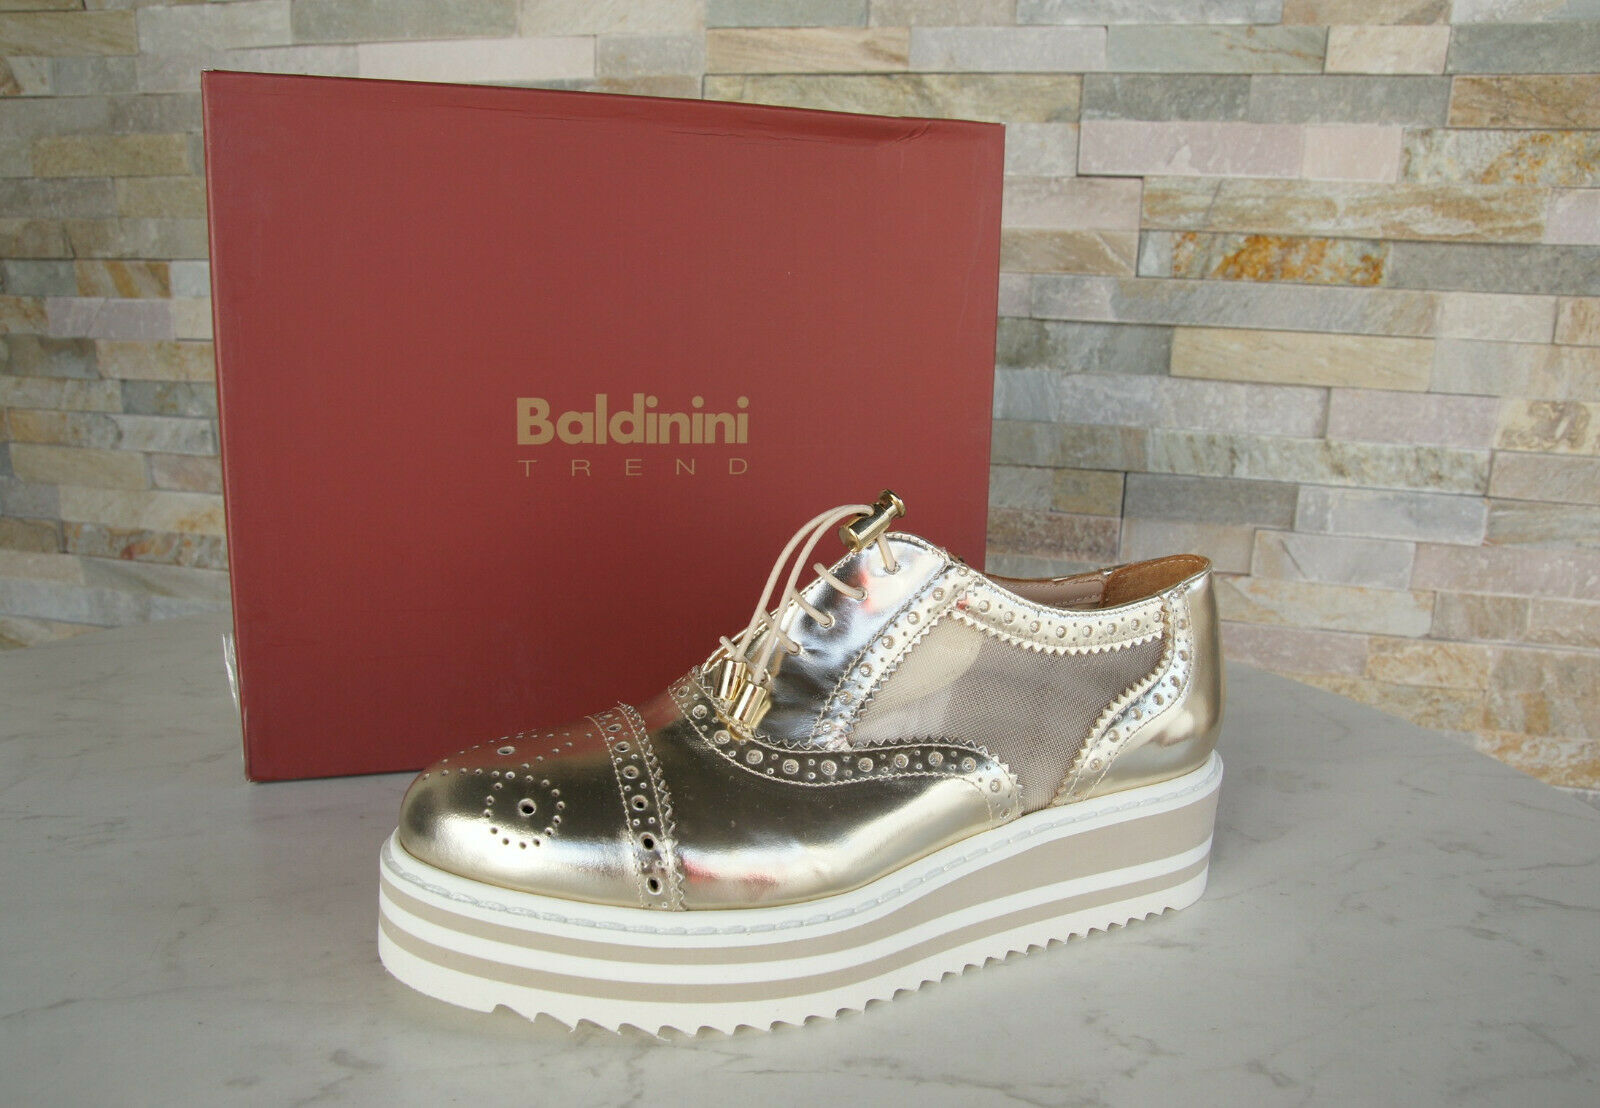 Baldinini Trend 36 Platform Lace-Up Loafers shoes gold New Formerly Rrp